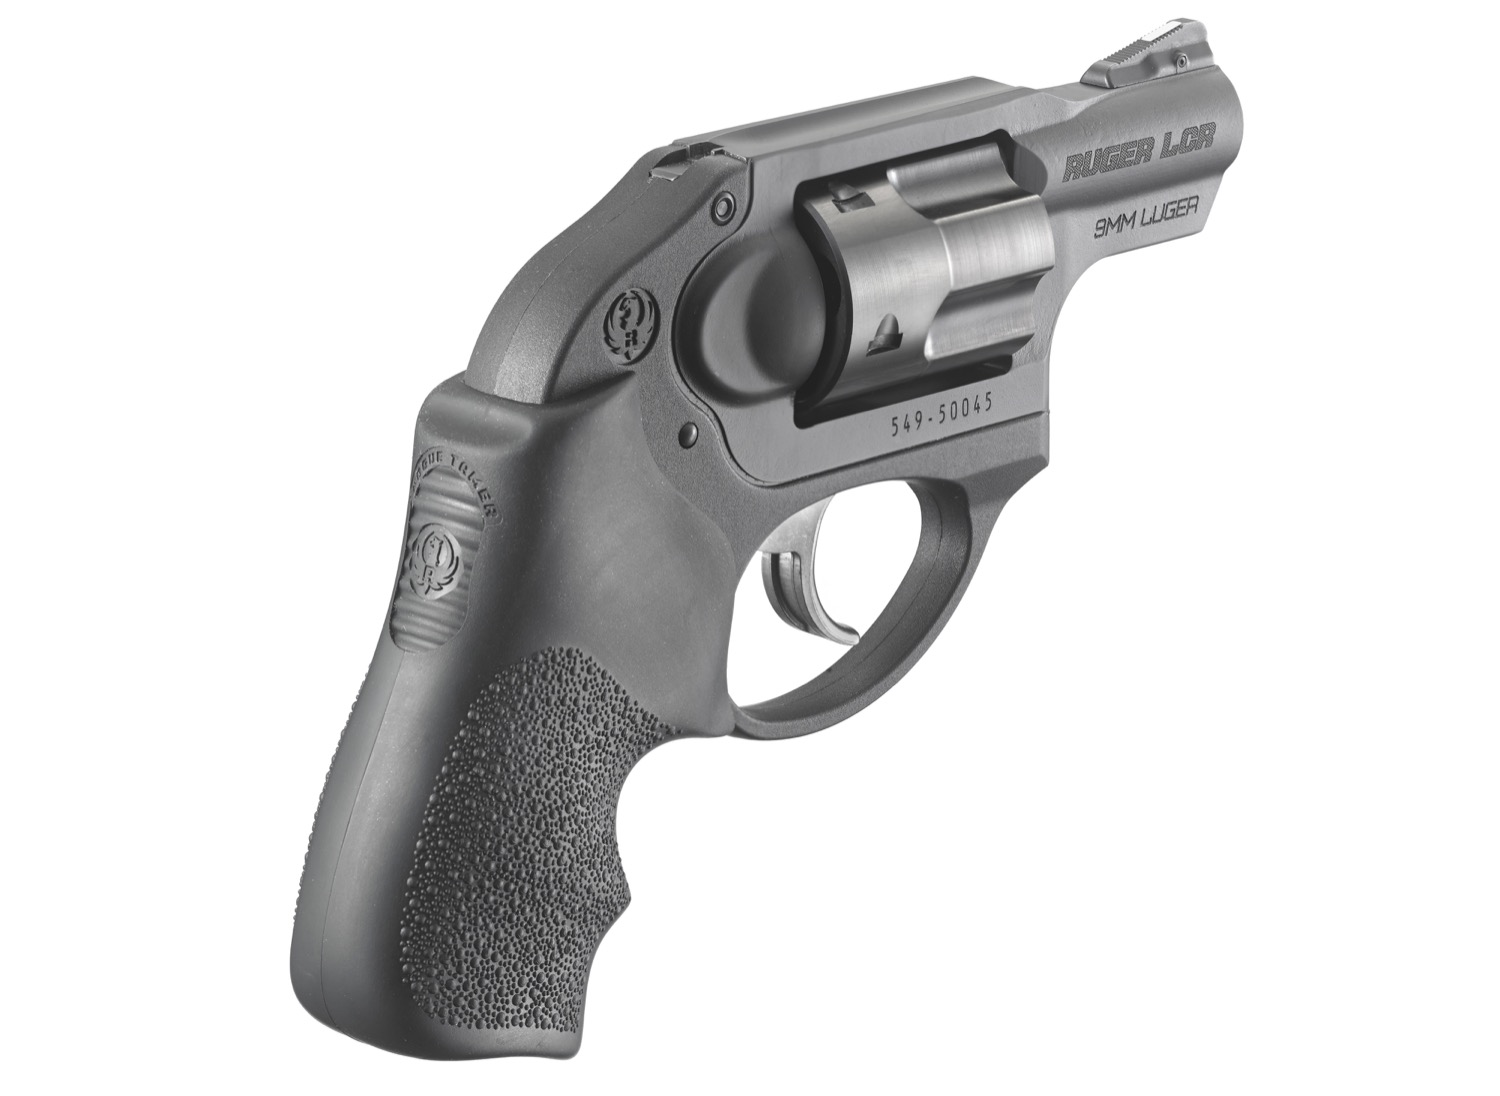 Ruger Lcr Double Action Revolver